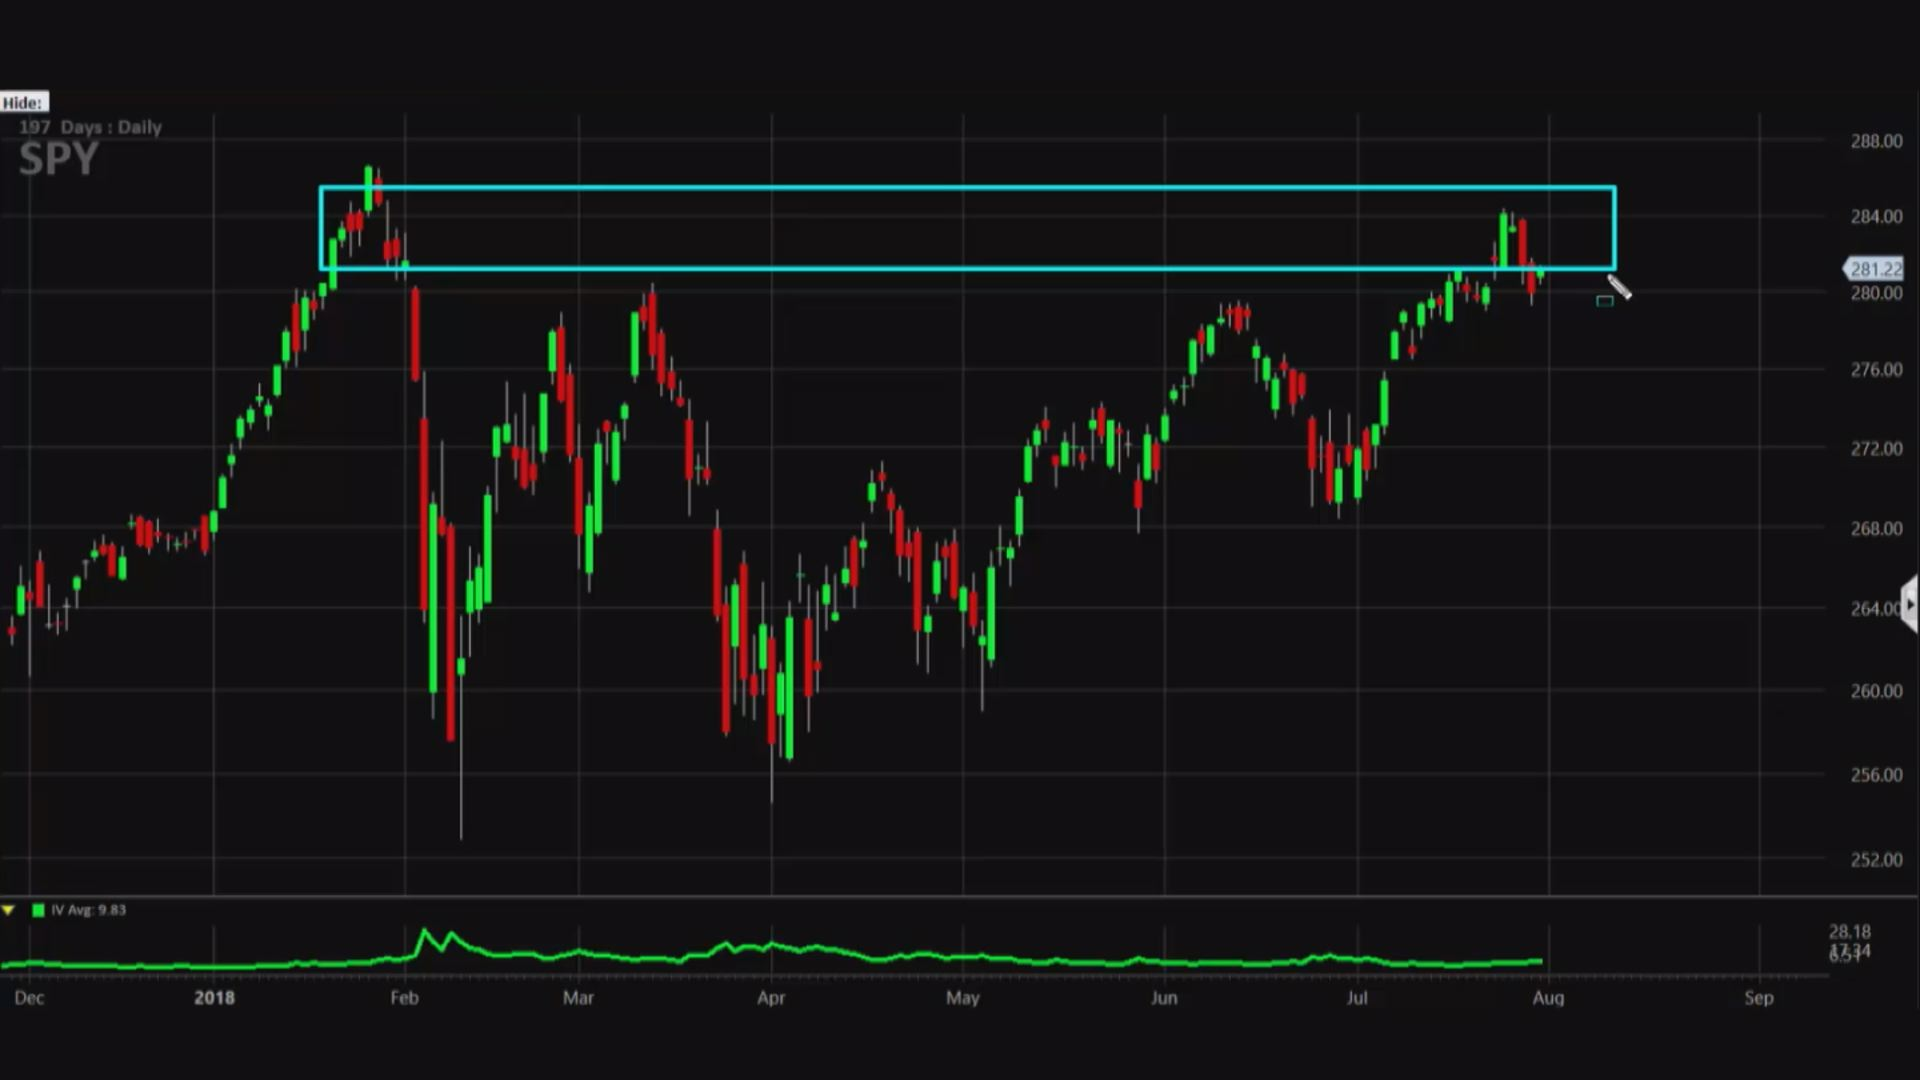 Charts point to near-term market top, trader warns